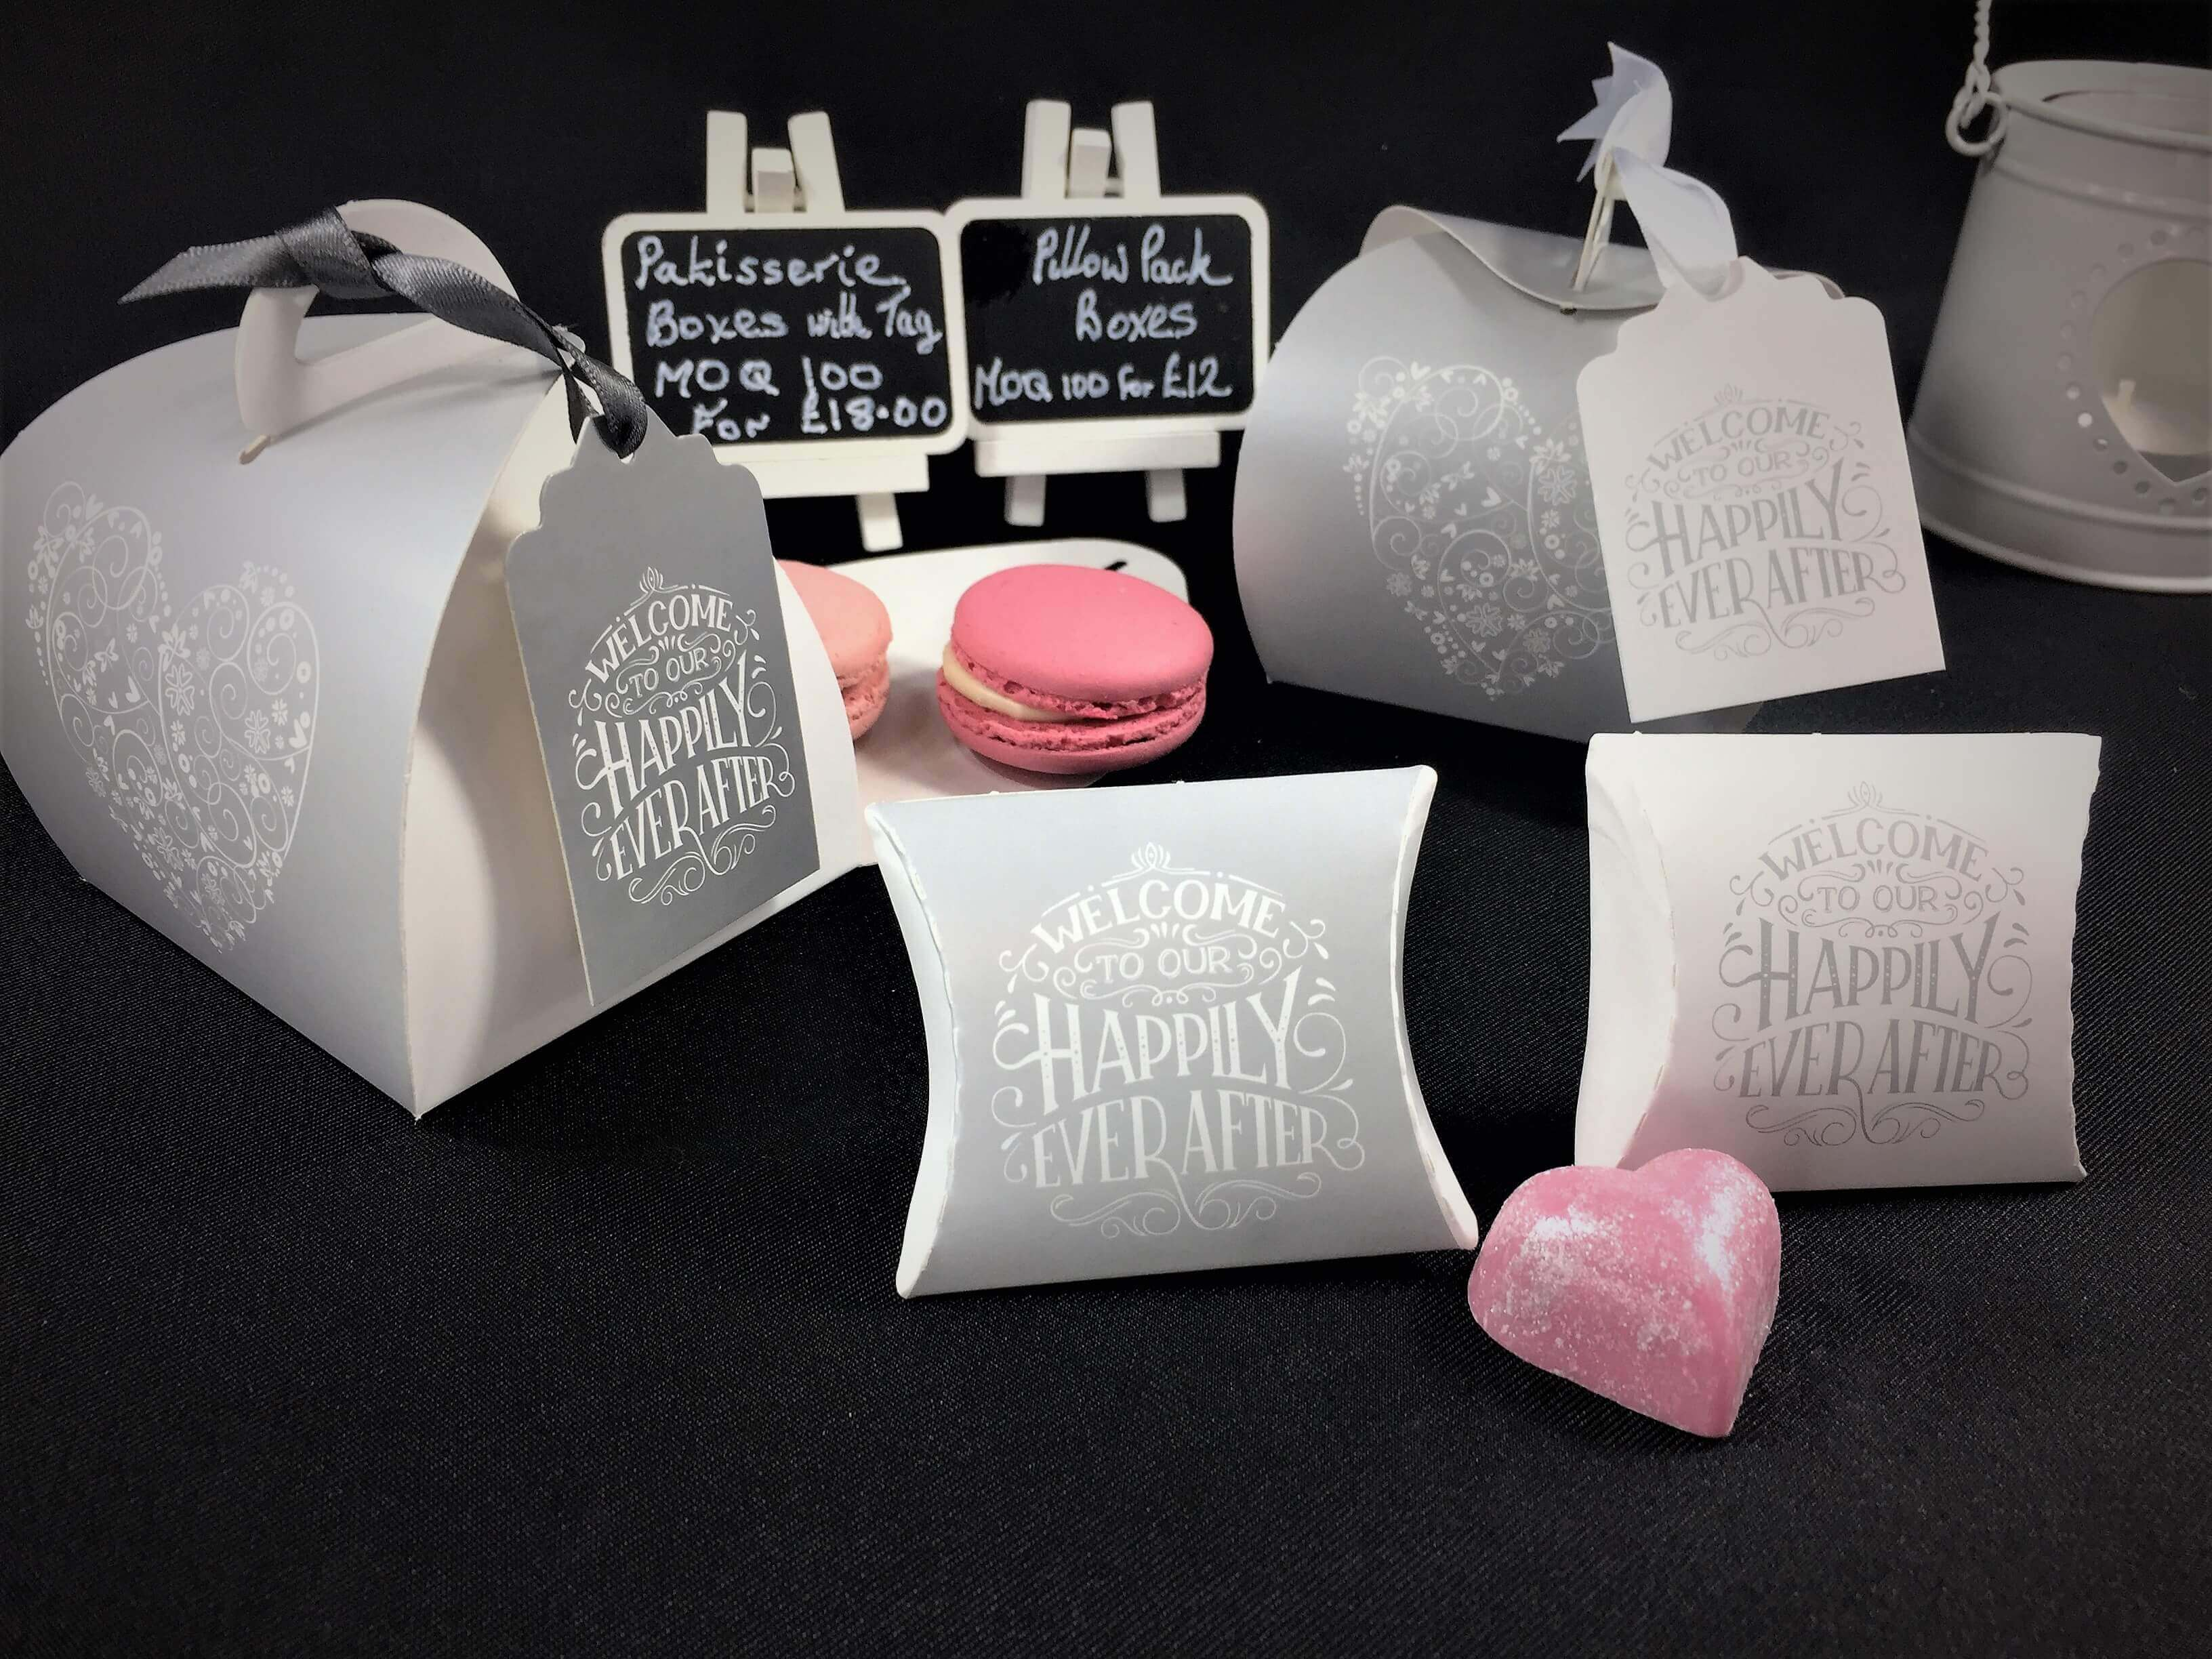 Patisserie 1 Grey & White Heart Print. Happily Ever After Pillow Pack Boxes Grey & White